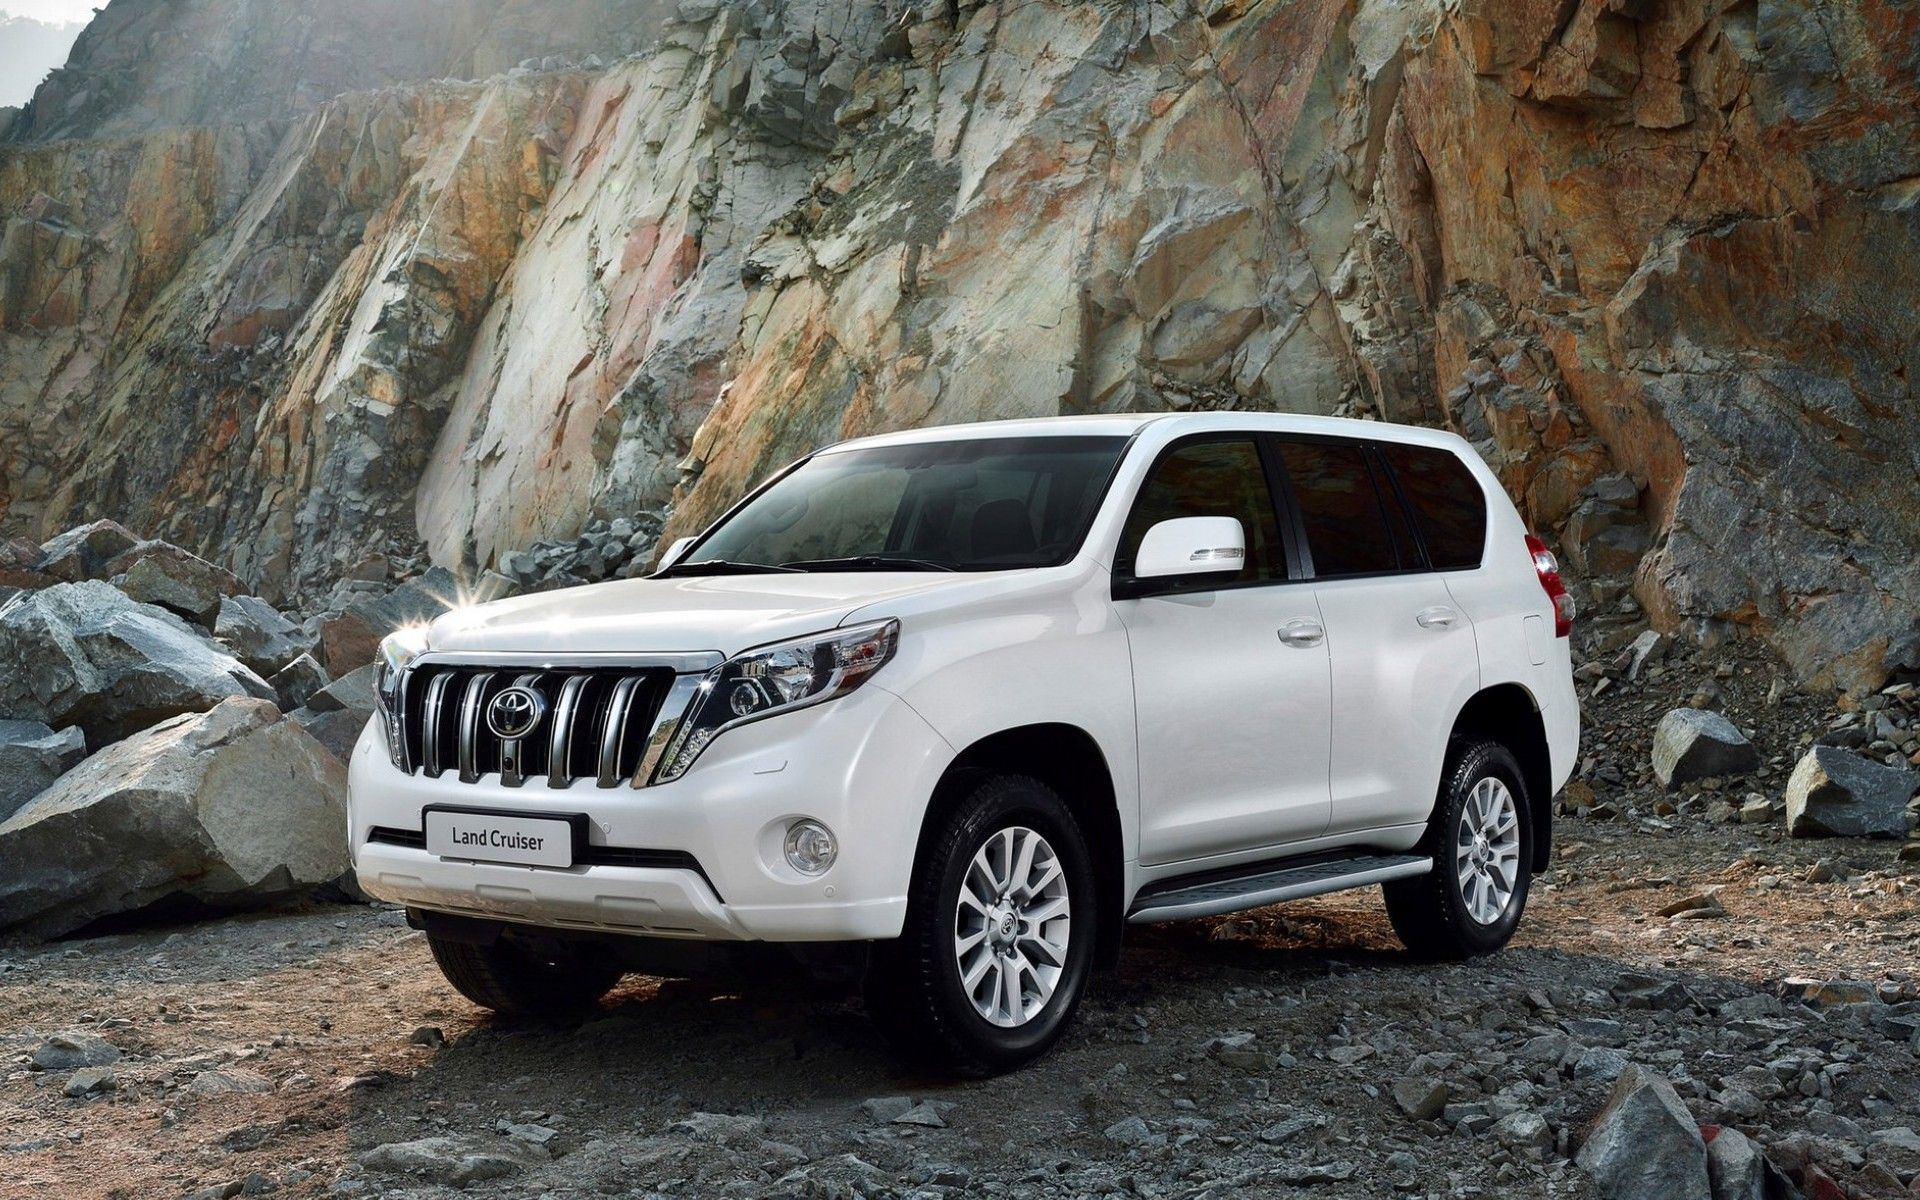 Land cruiser Prado - Top Selling SUVs